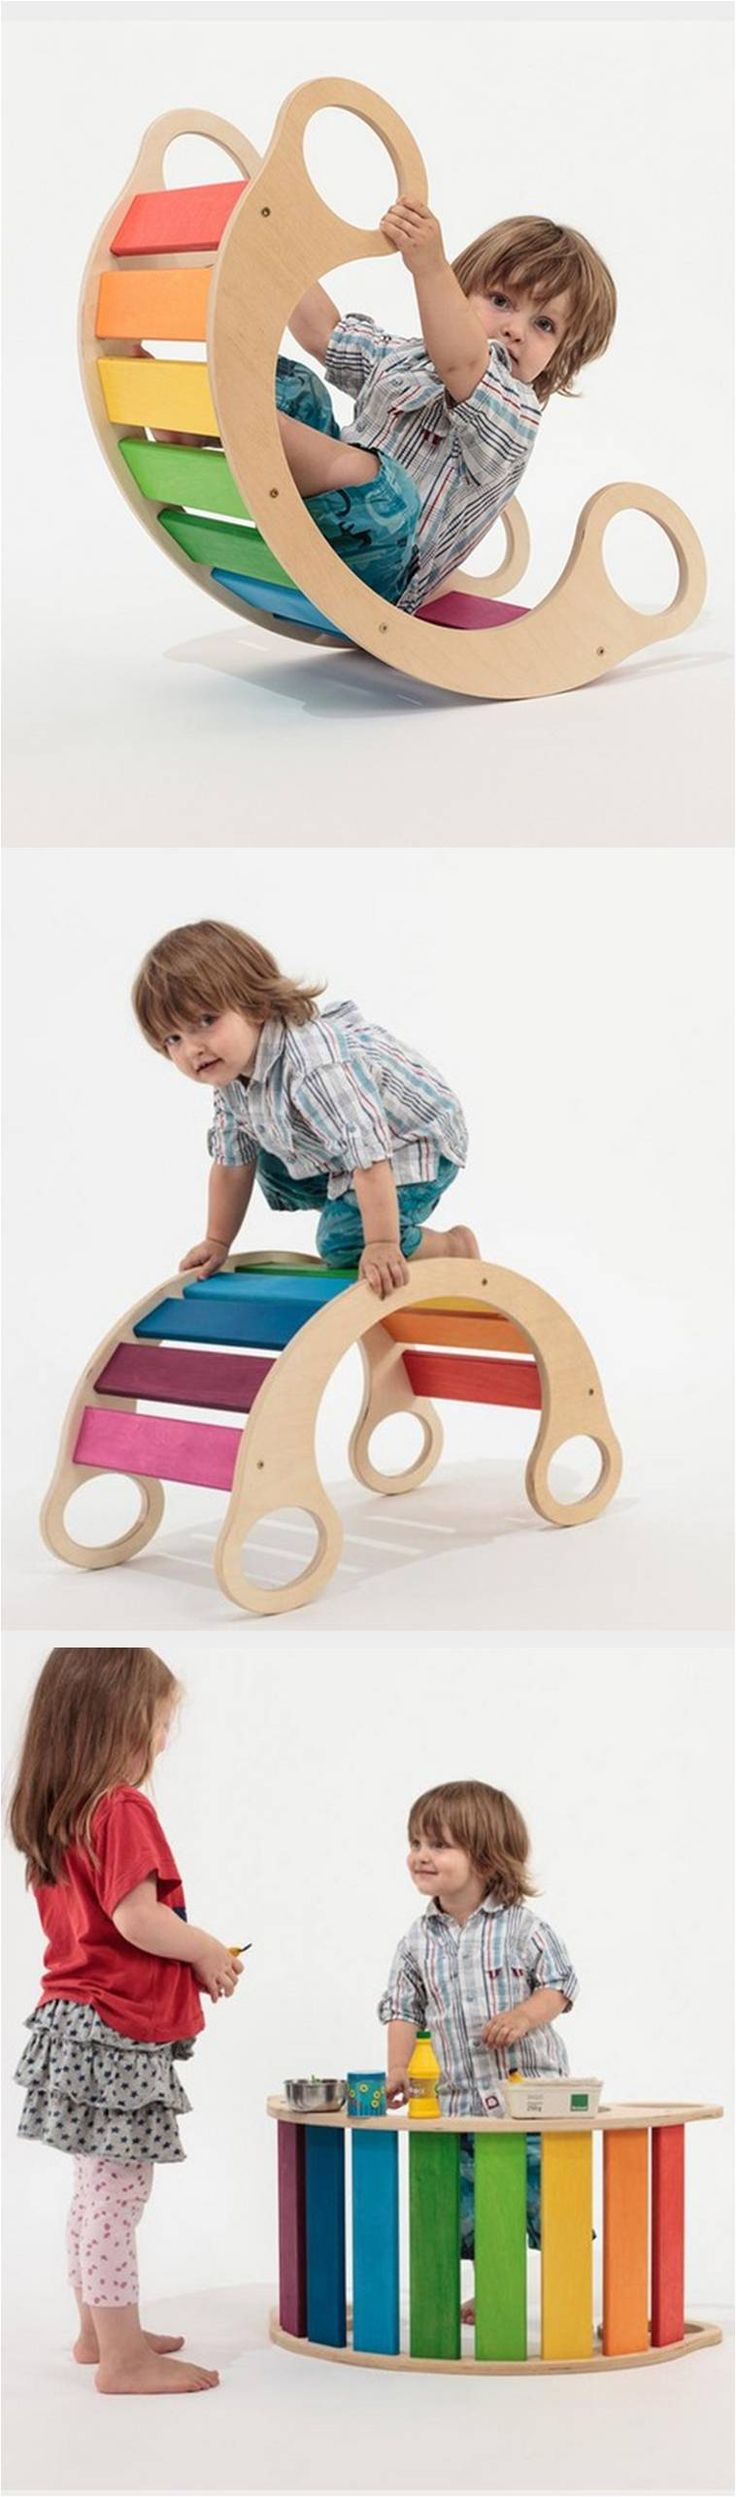 Best 25+ Wood kids toys ideas on Pinterest | DIY toys build, Kids ...